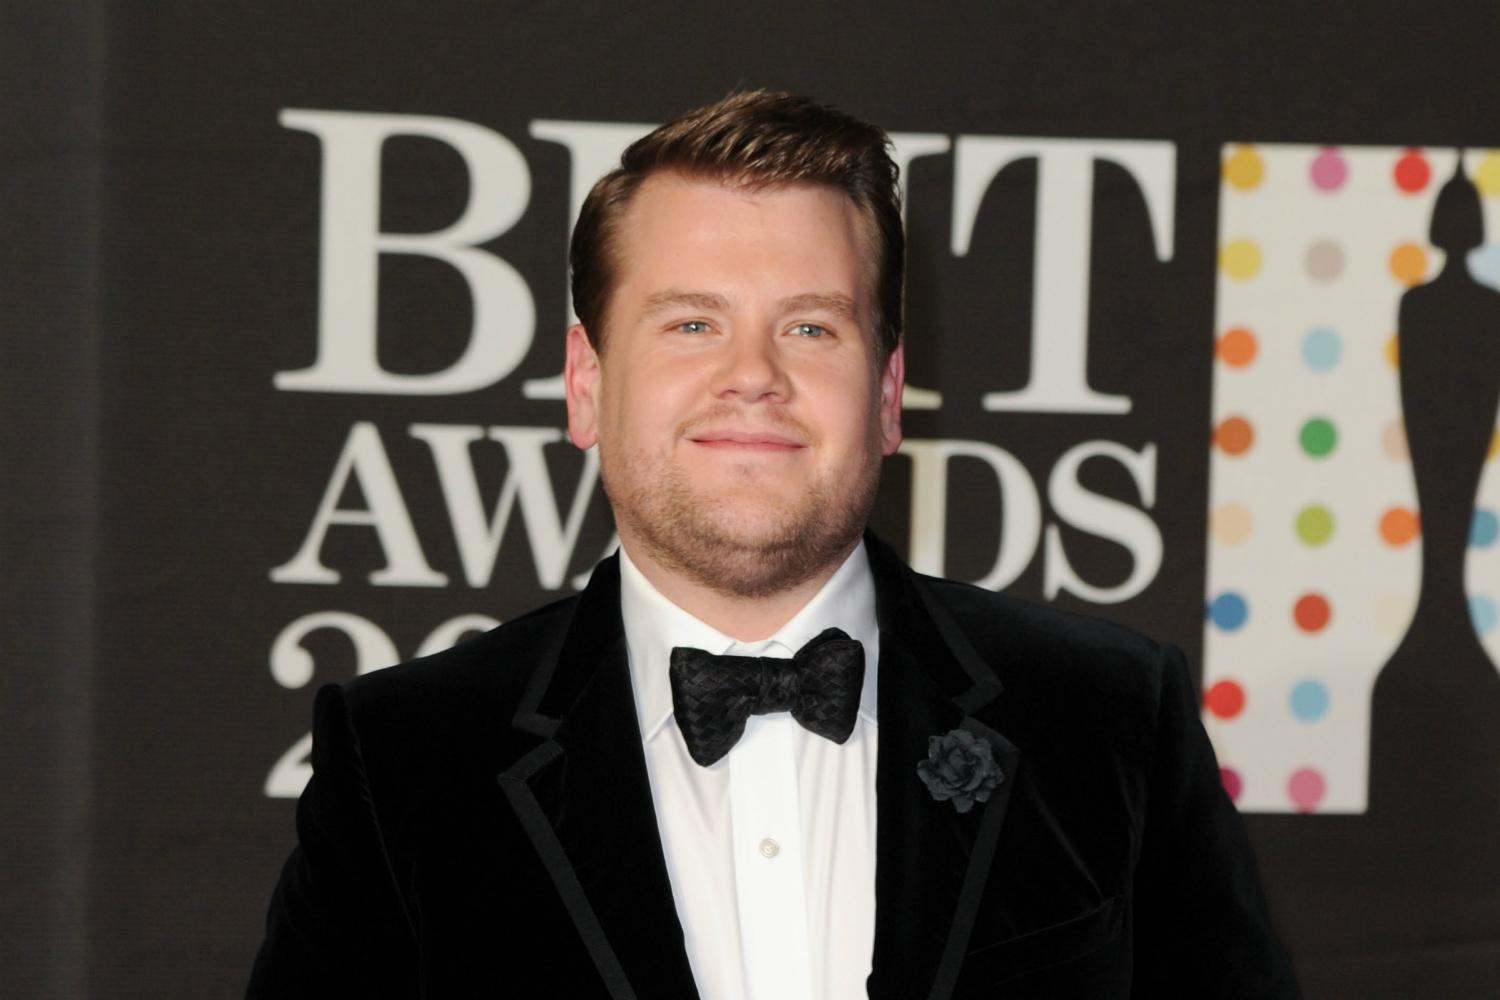 James Corden to replace Craig Ferguson on Late Late Show ...